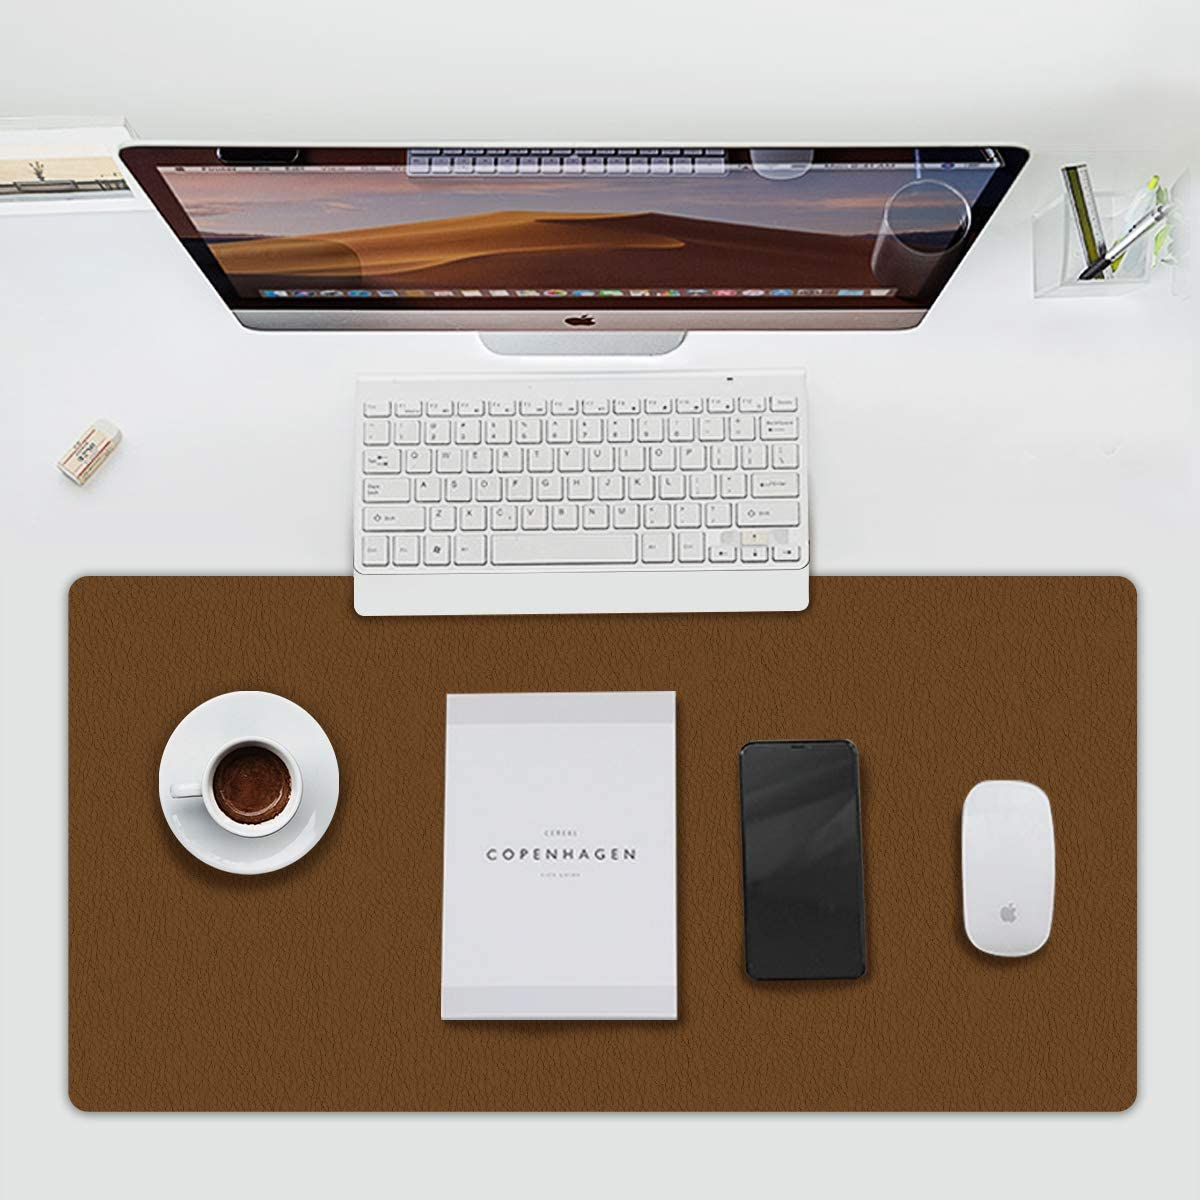 Multifunctional Office Desk Pad Luosu Ultra Thin Waterproof PU Leather Mouse Pad, Dual Use Desk Writing Mat for Office/Home (Brown, 23.6''13.7'')